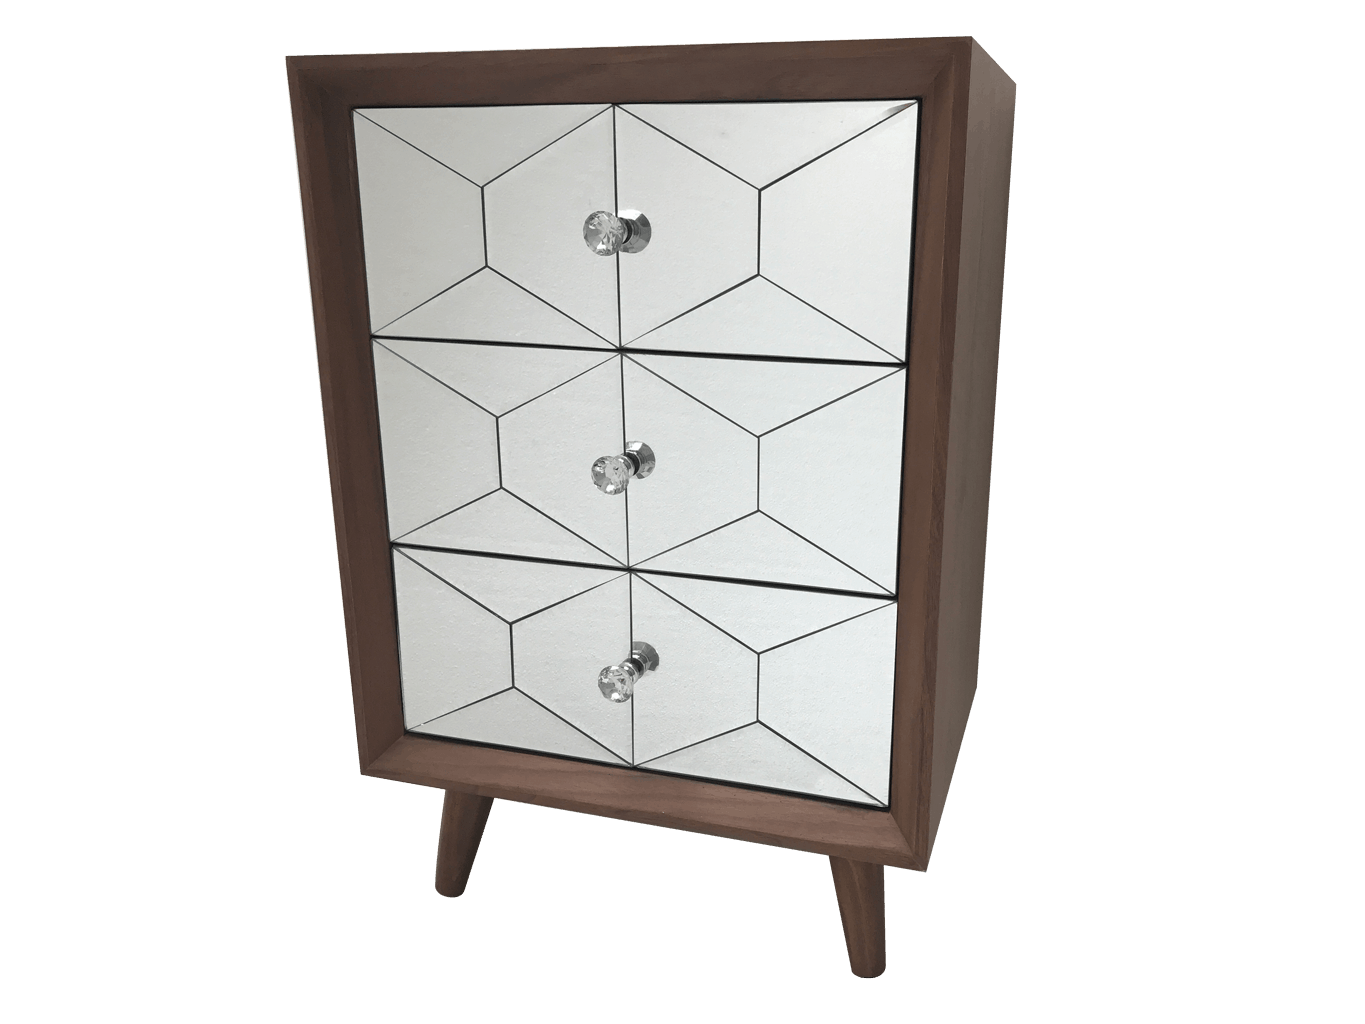 Wooden Top Chest of Drawers with 3 Mirrored Drawers